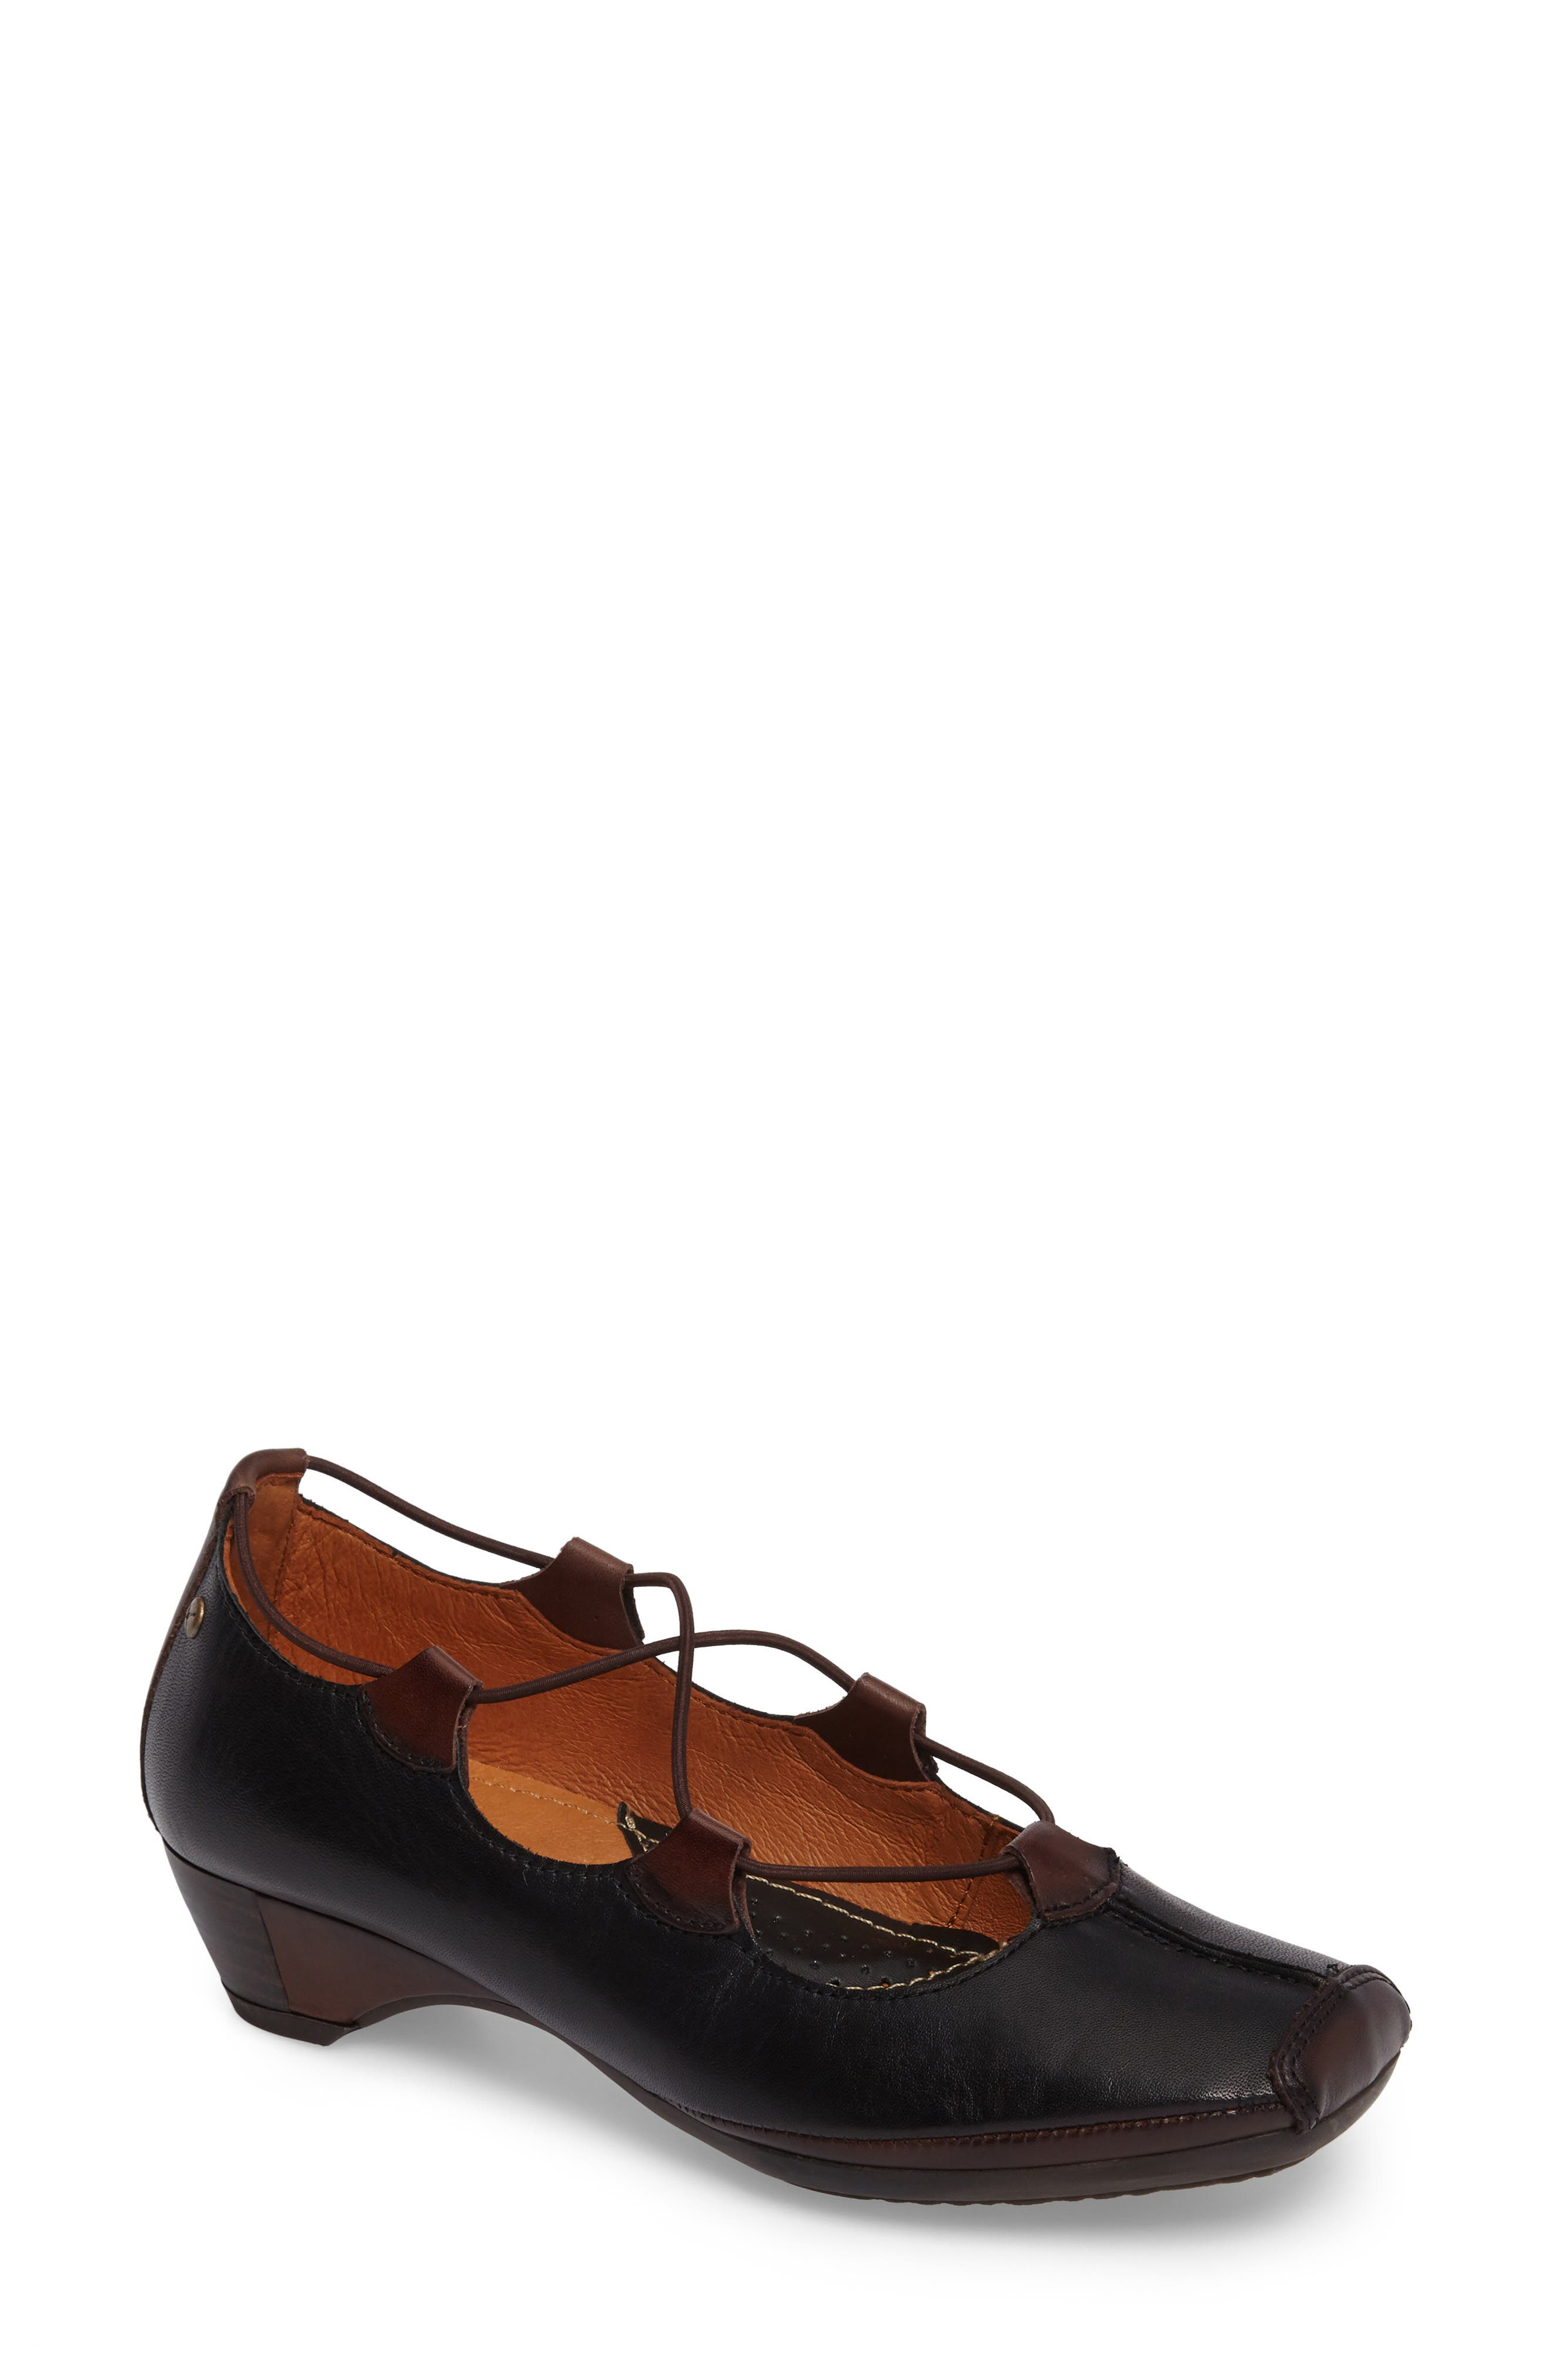 Gandia Lace-Up Pump,                             Main thumbnail 1, color,                             BLACK OLMO LEATHER